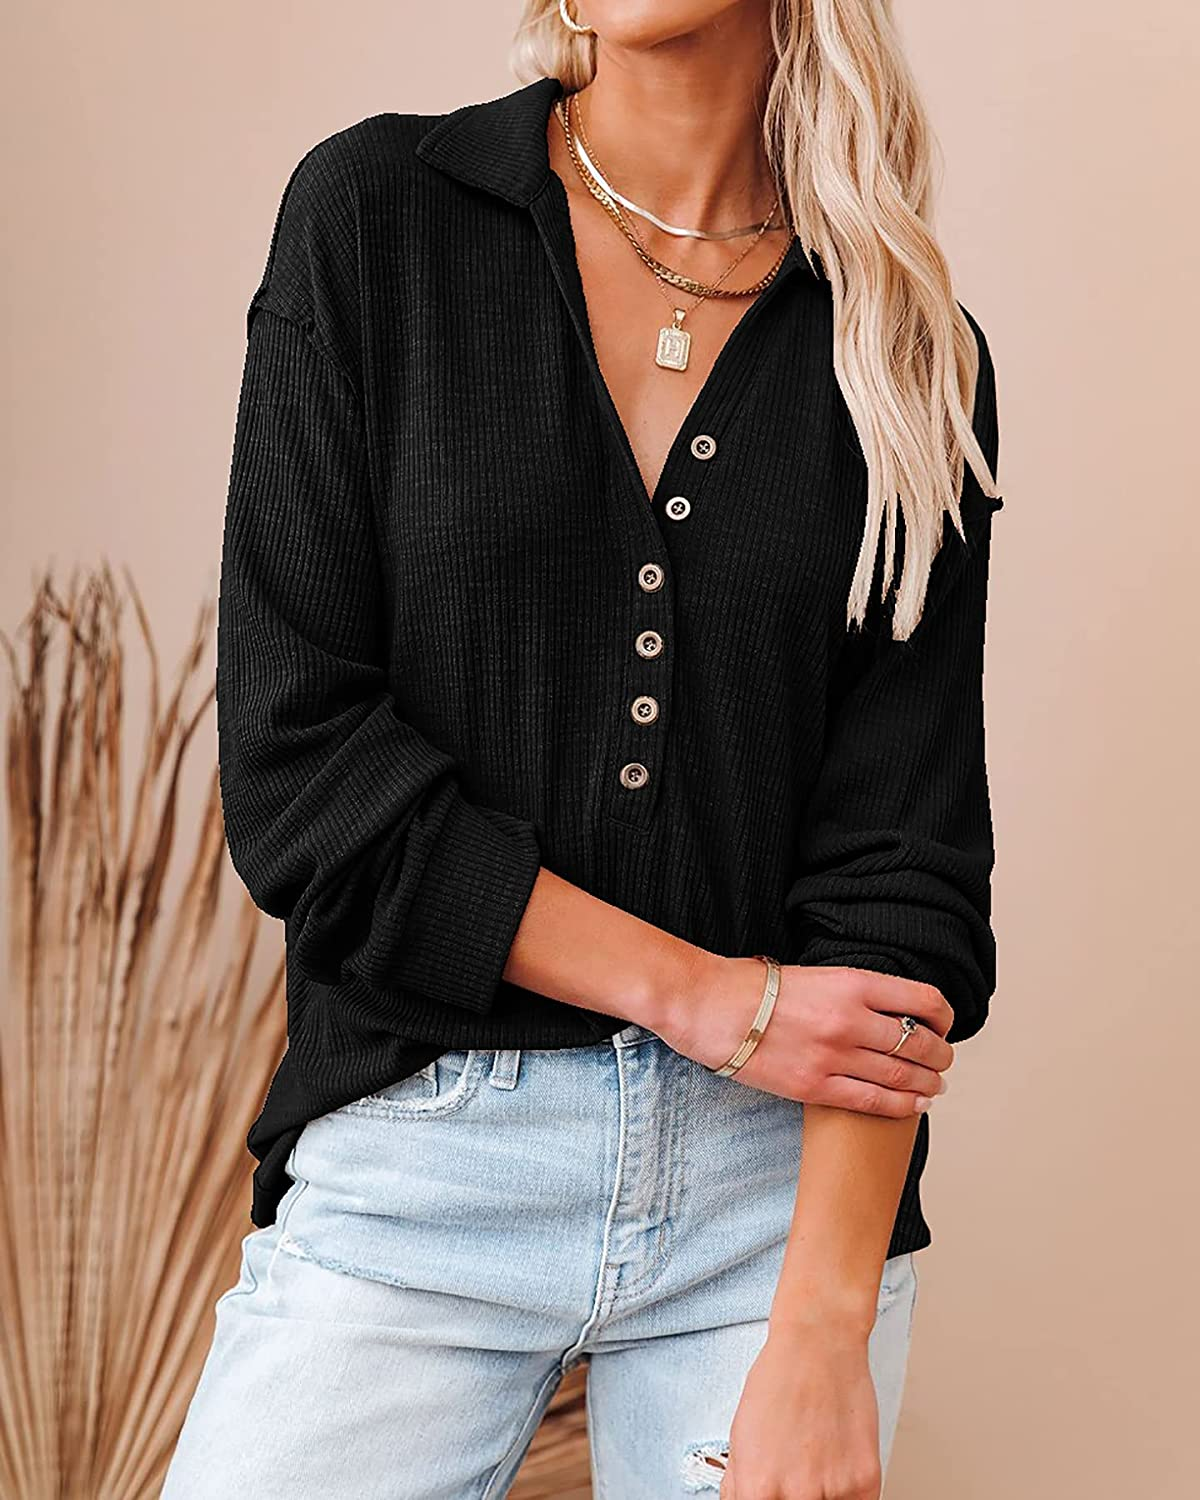 BTFBM Women Casual Button Up V Neck Blouses Long Sleeves Solid Color Stand Collar Knitted Tops Cute Relaxed Fit Shirts